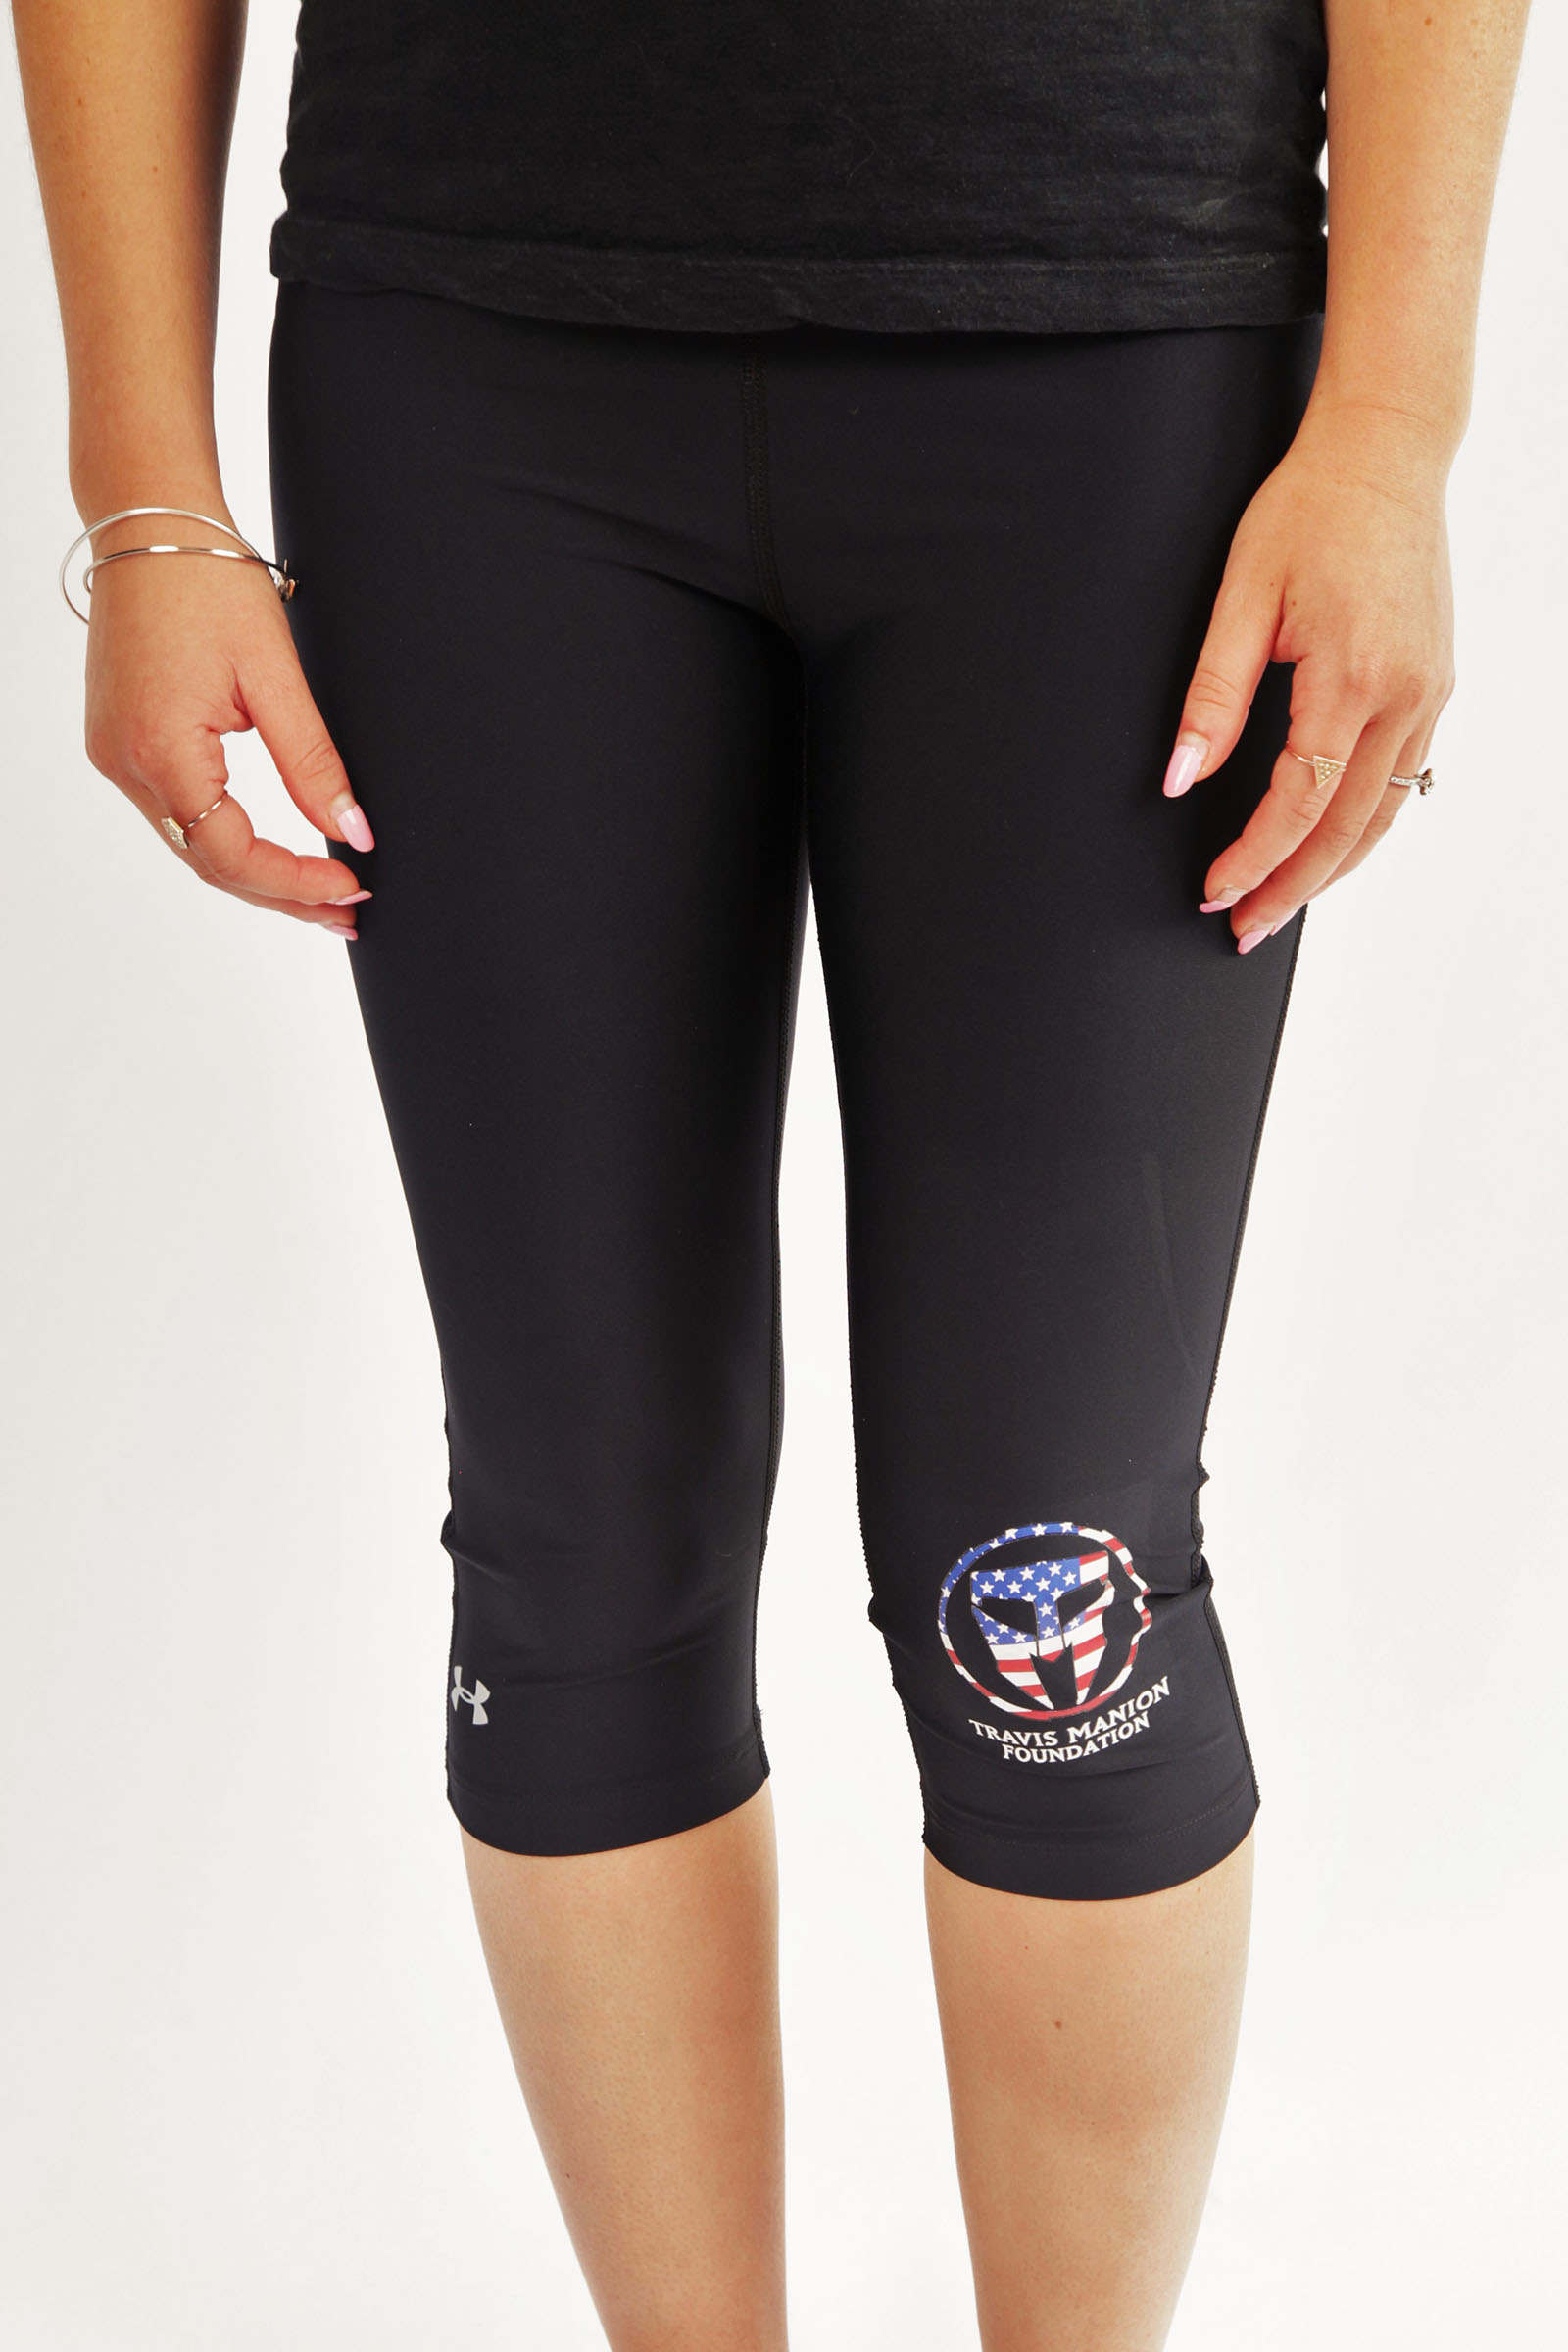 Travis Manion Foundation Ladies Under Armour Running Capri